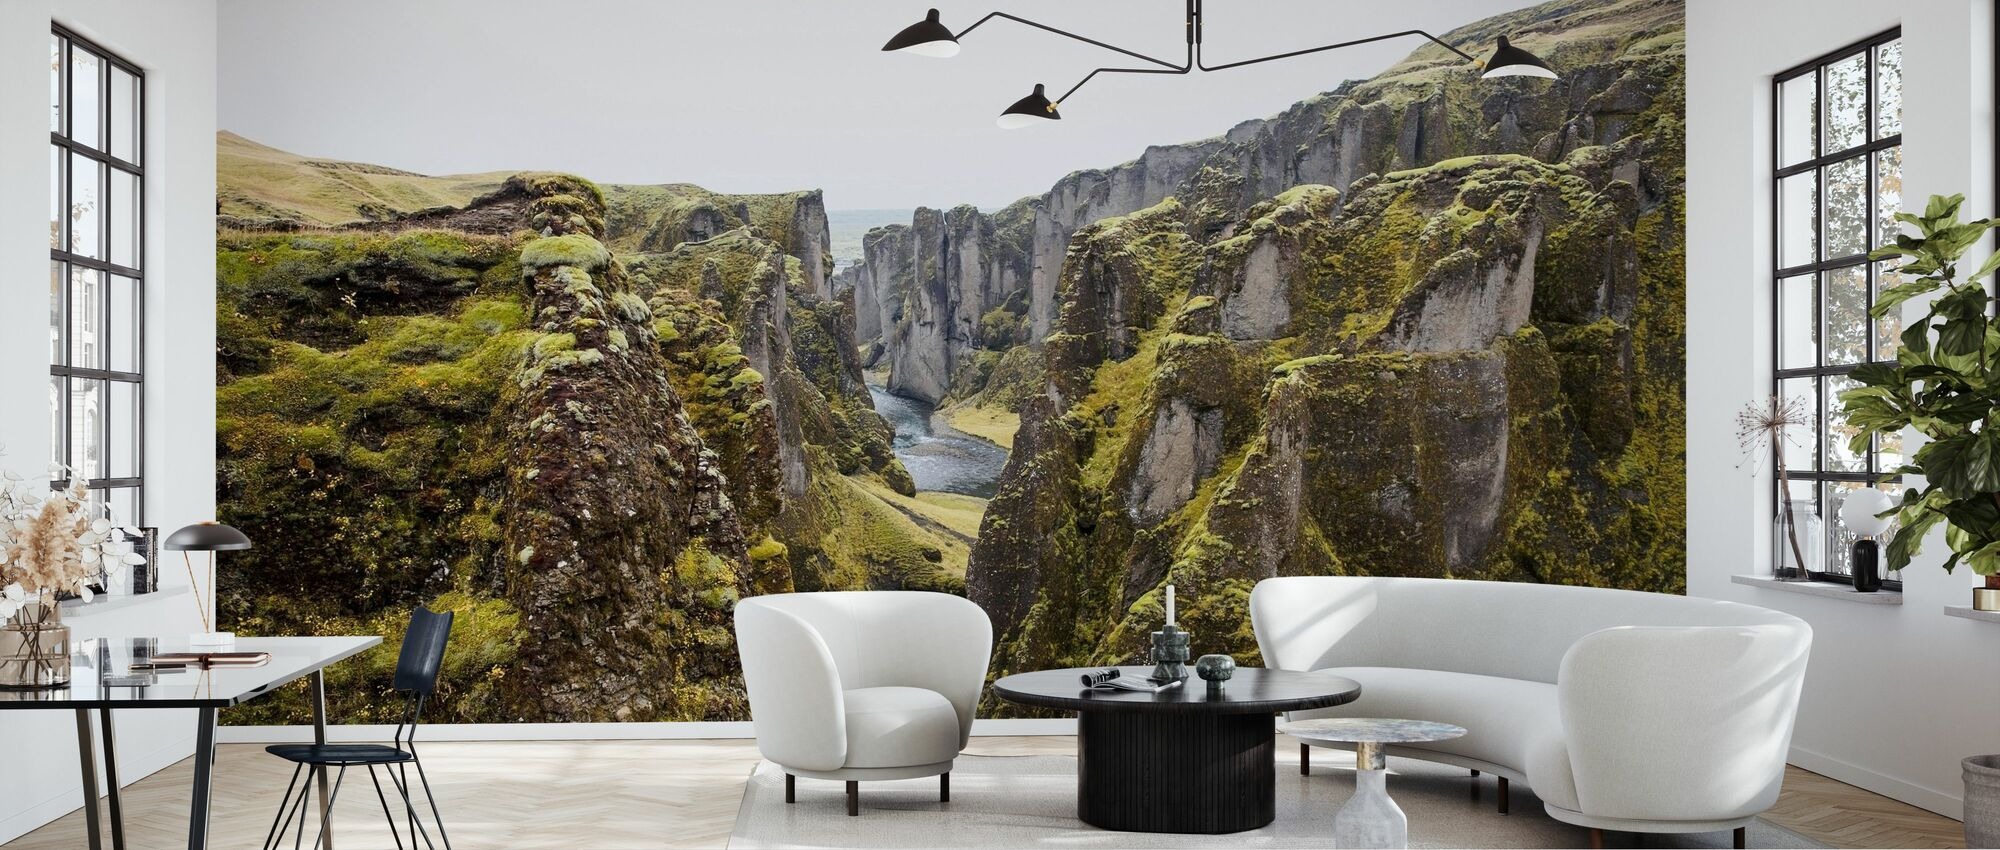 Canyon Rift - Wallpaper - Living Room